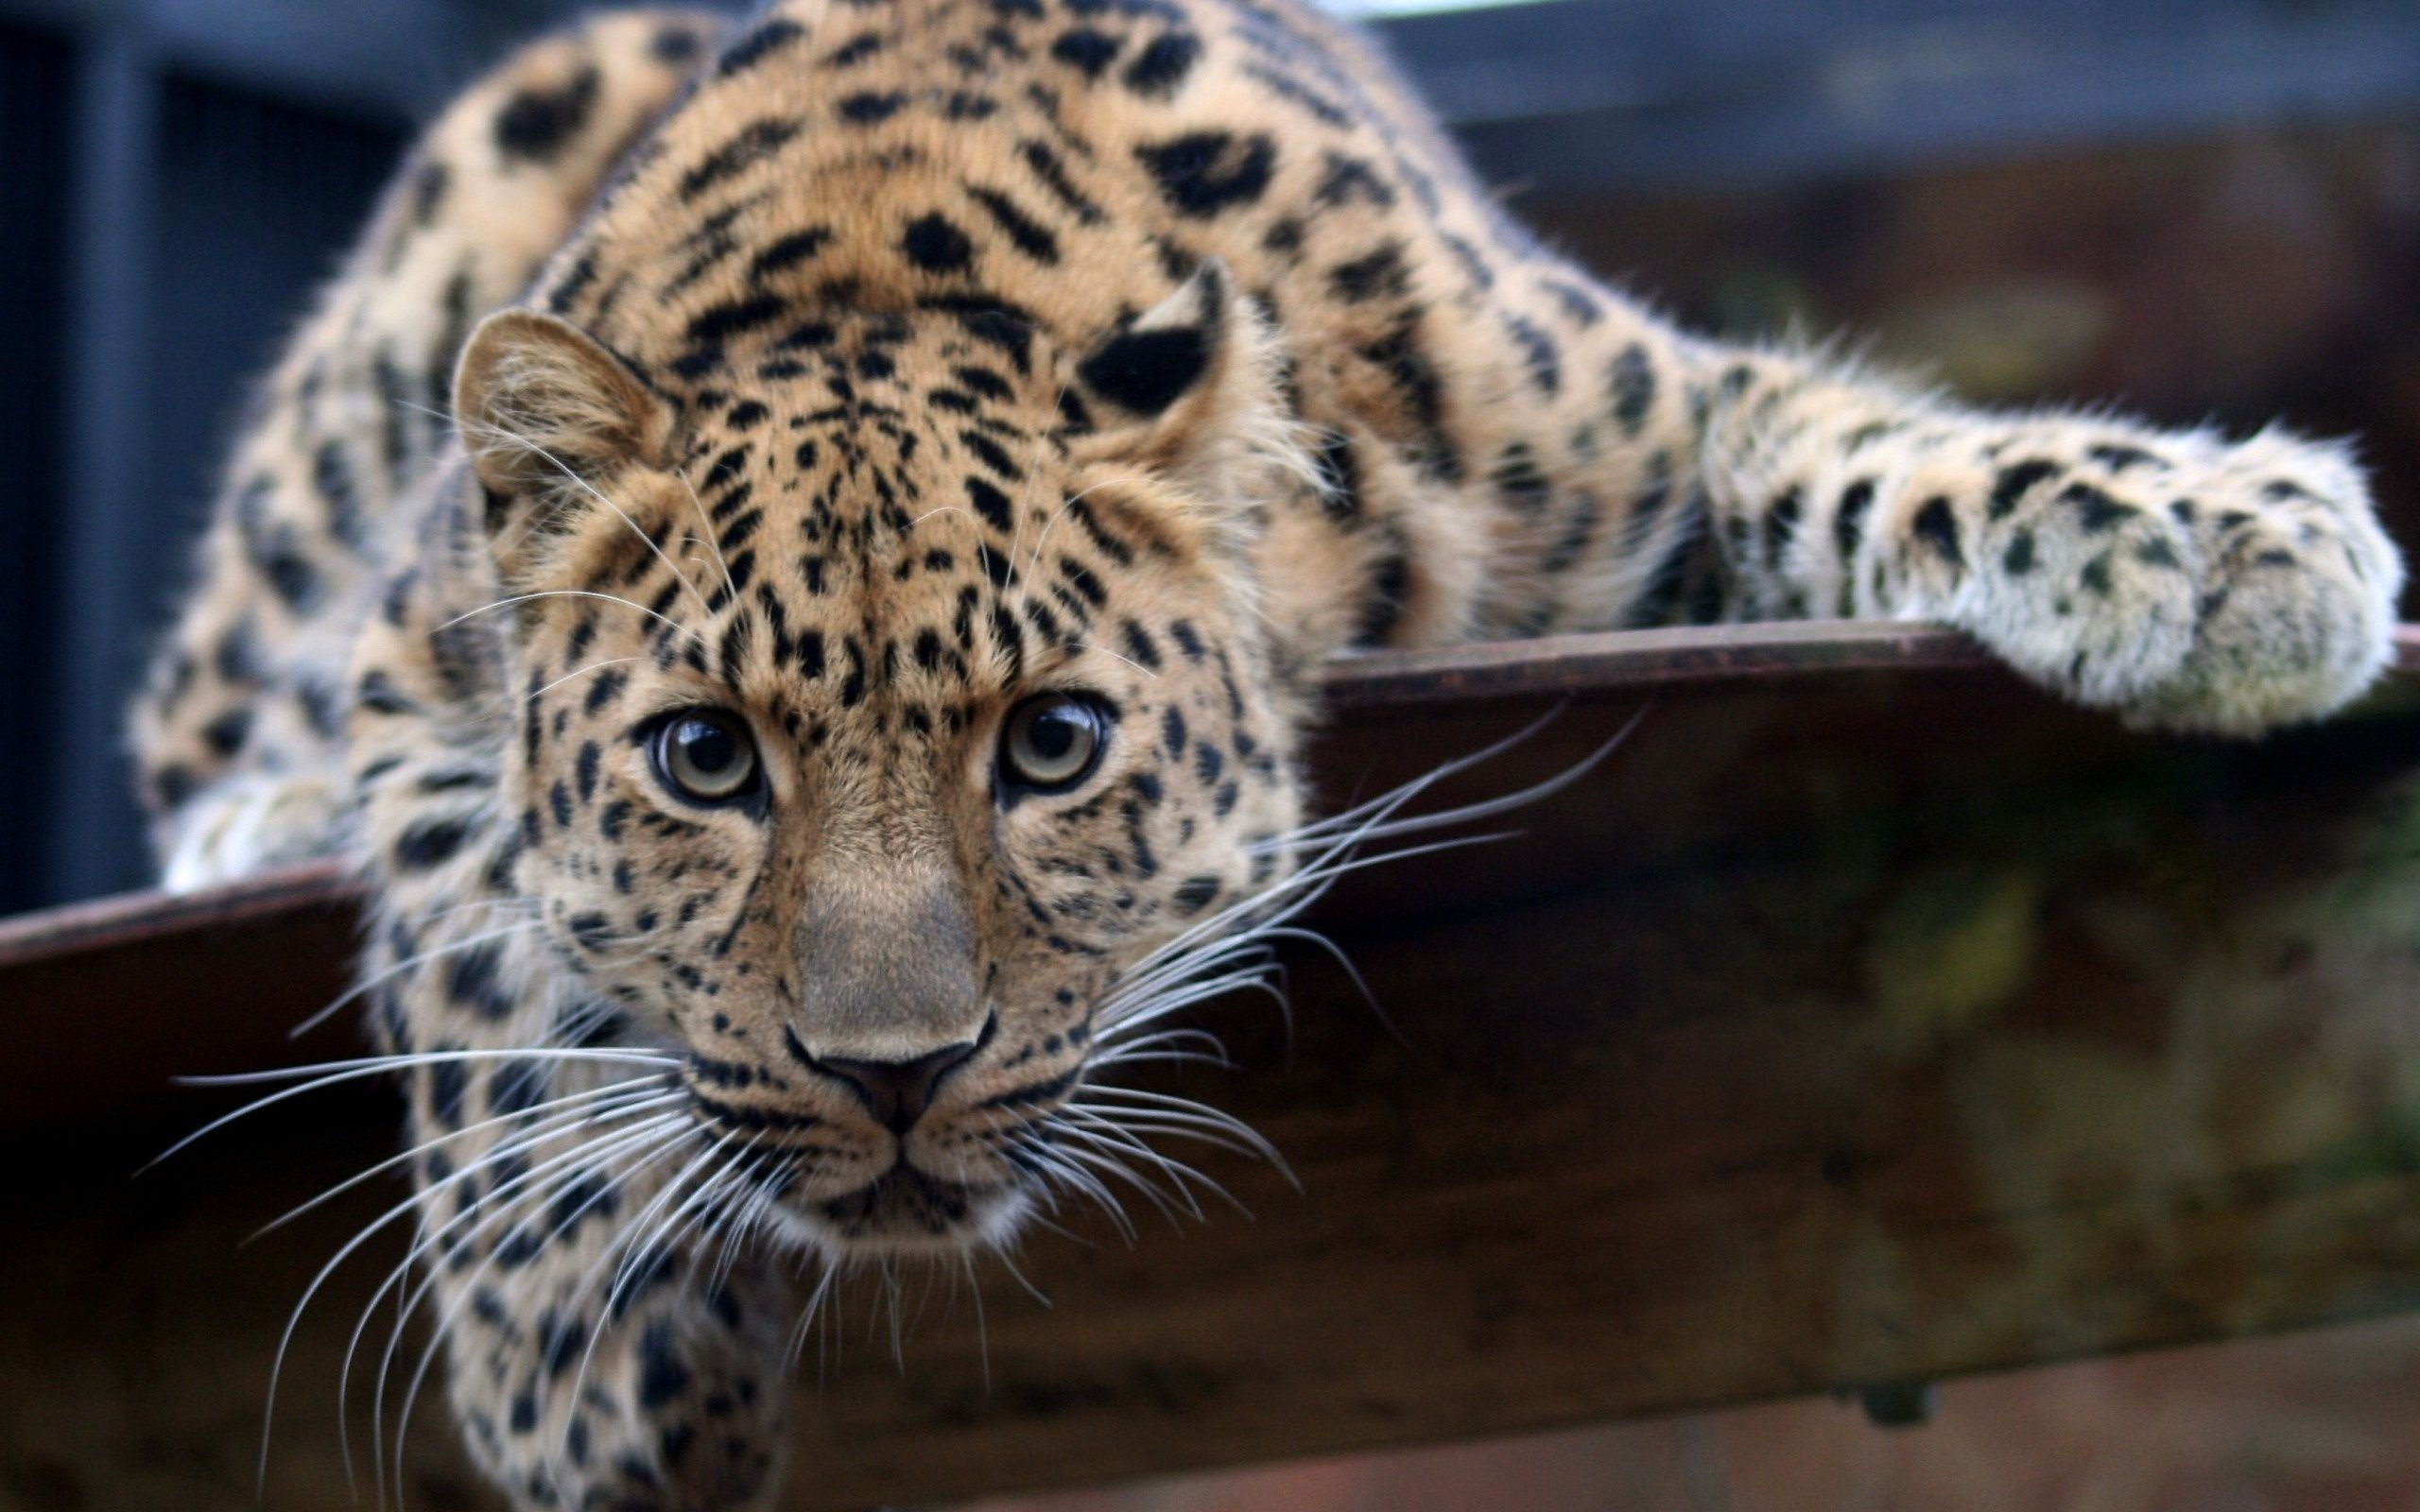 Jaguar hd wallpaper hintergrund 2560x1600 id 276135 - Jaguar animal hd wallpapers ...